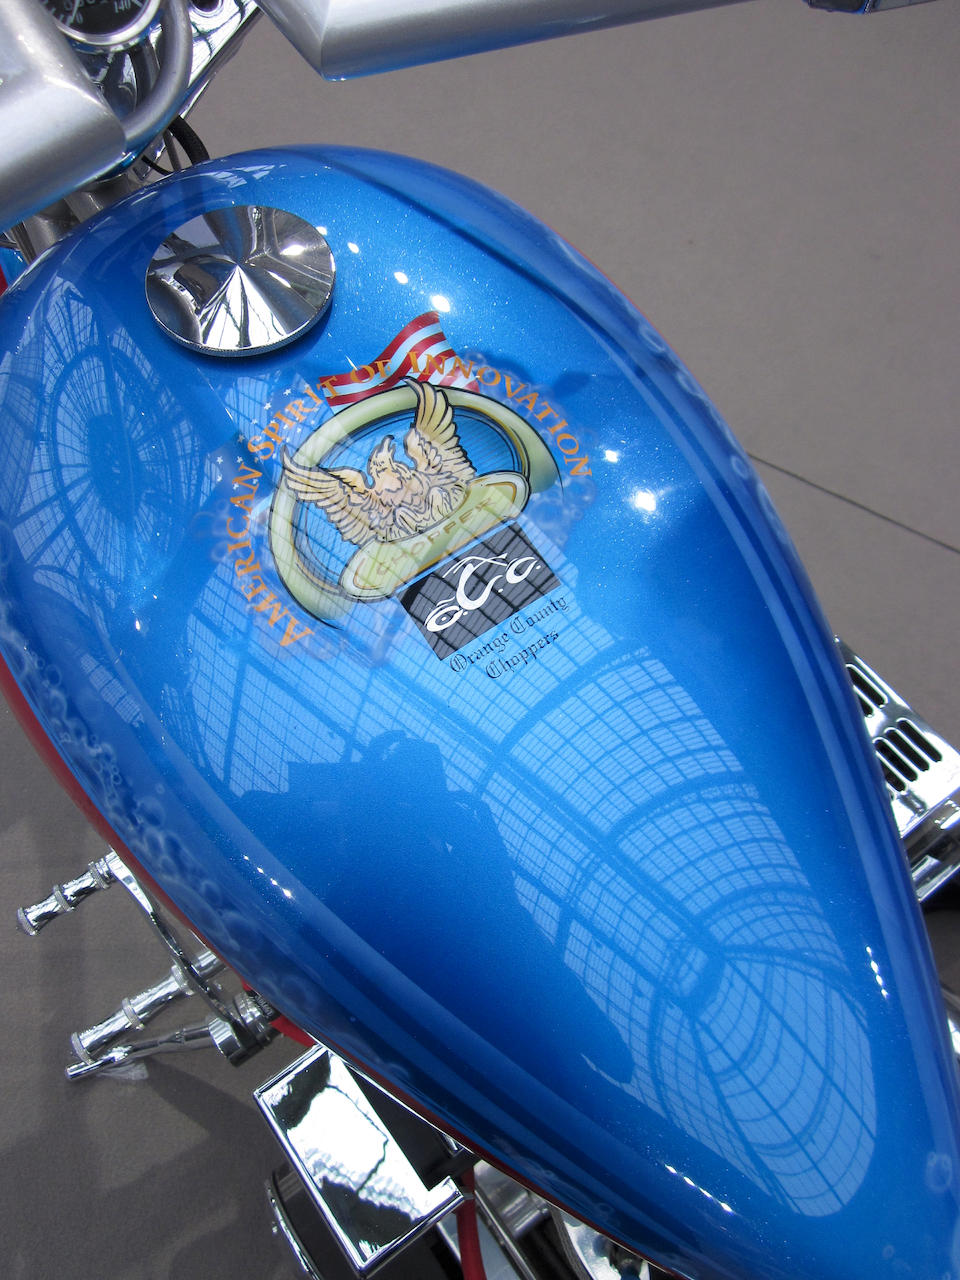 Only 79 miles (approximately 127 kilometres) from new 2005 Orange County Chopper 'American Spirit of Invention', Frame no. SW92702R1STOC1534 Engine no. FC00722